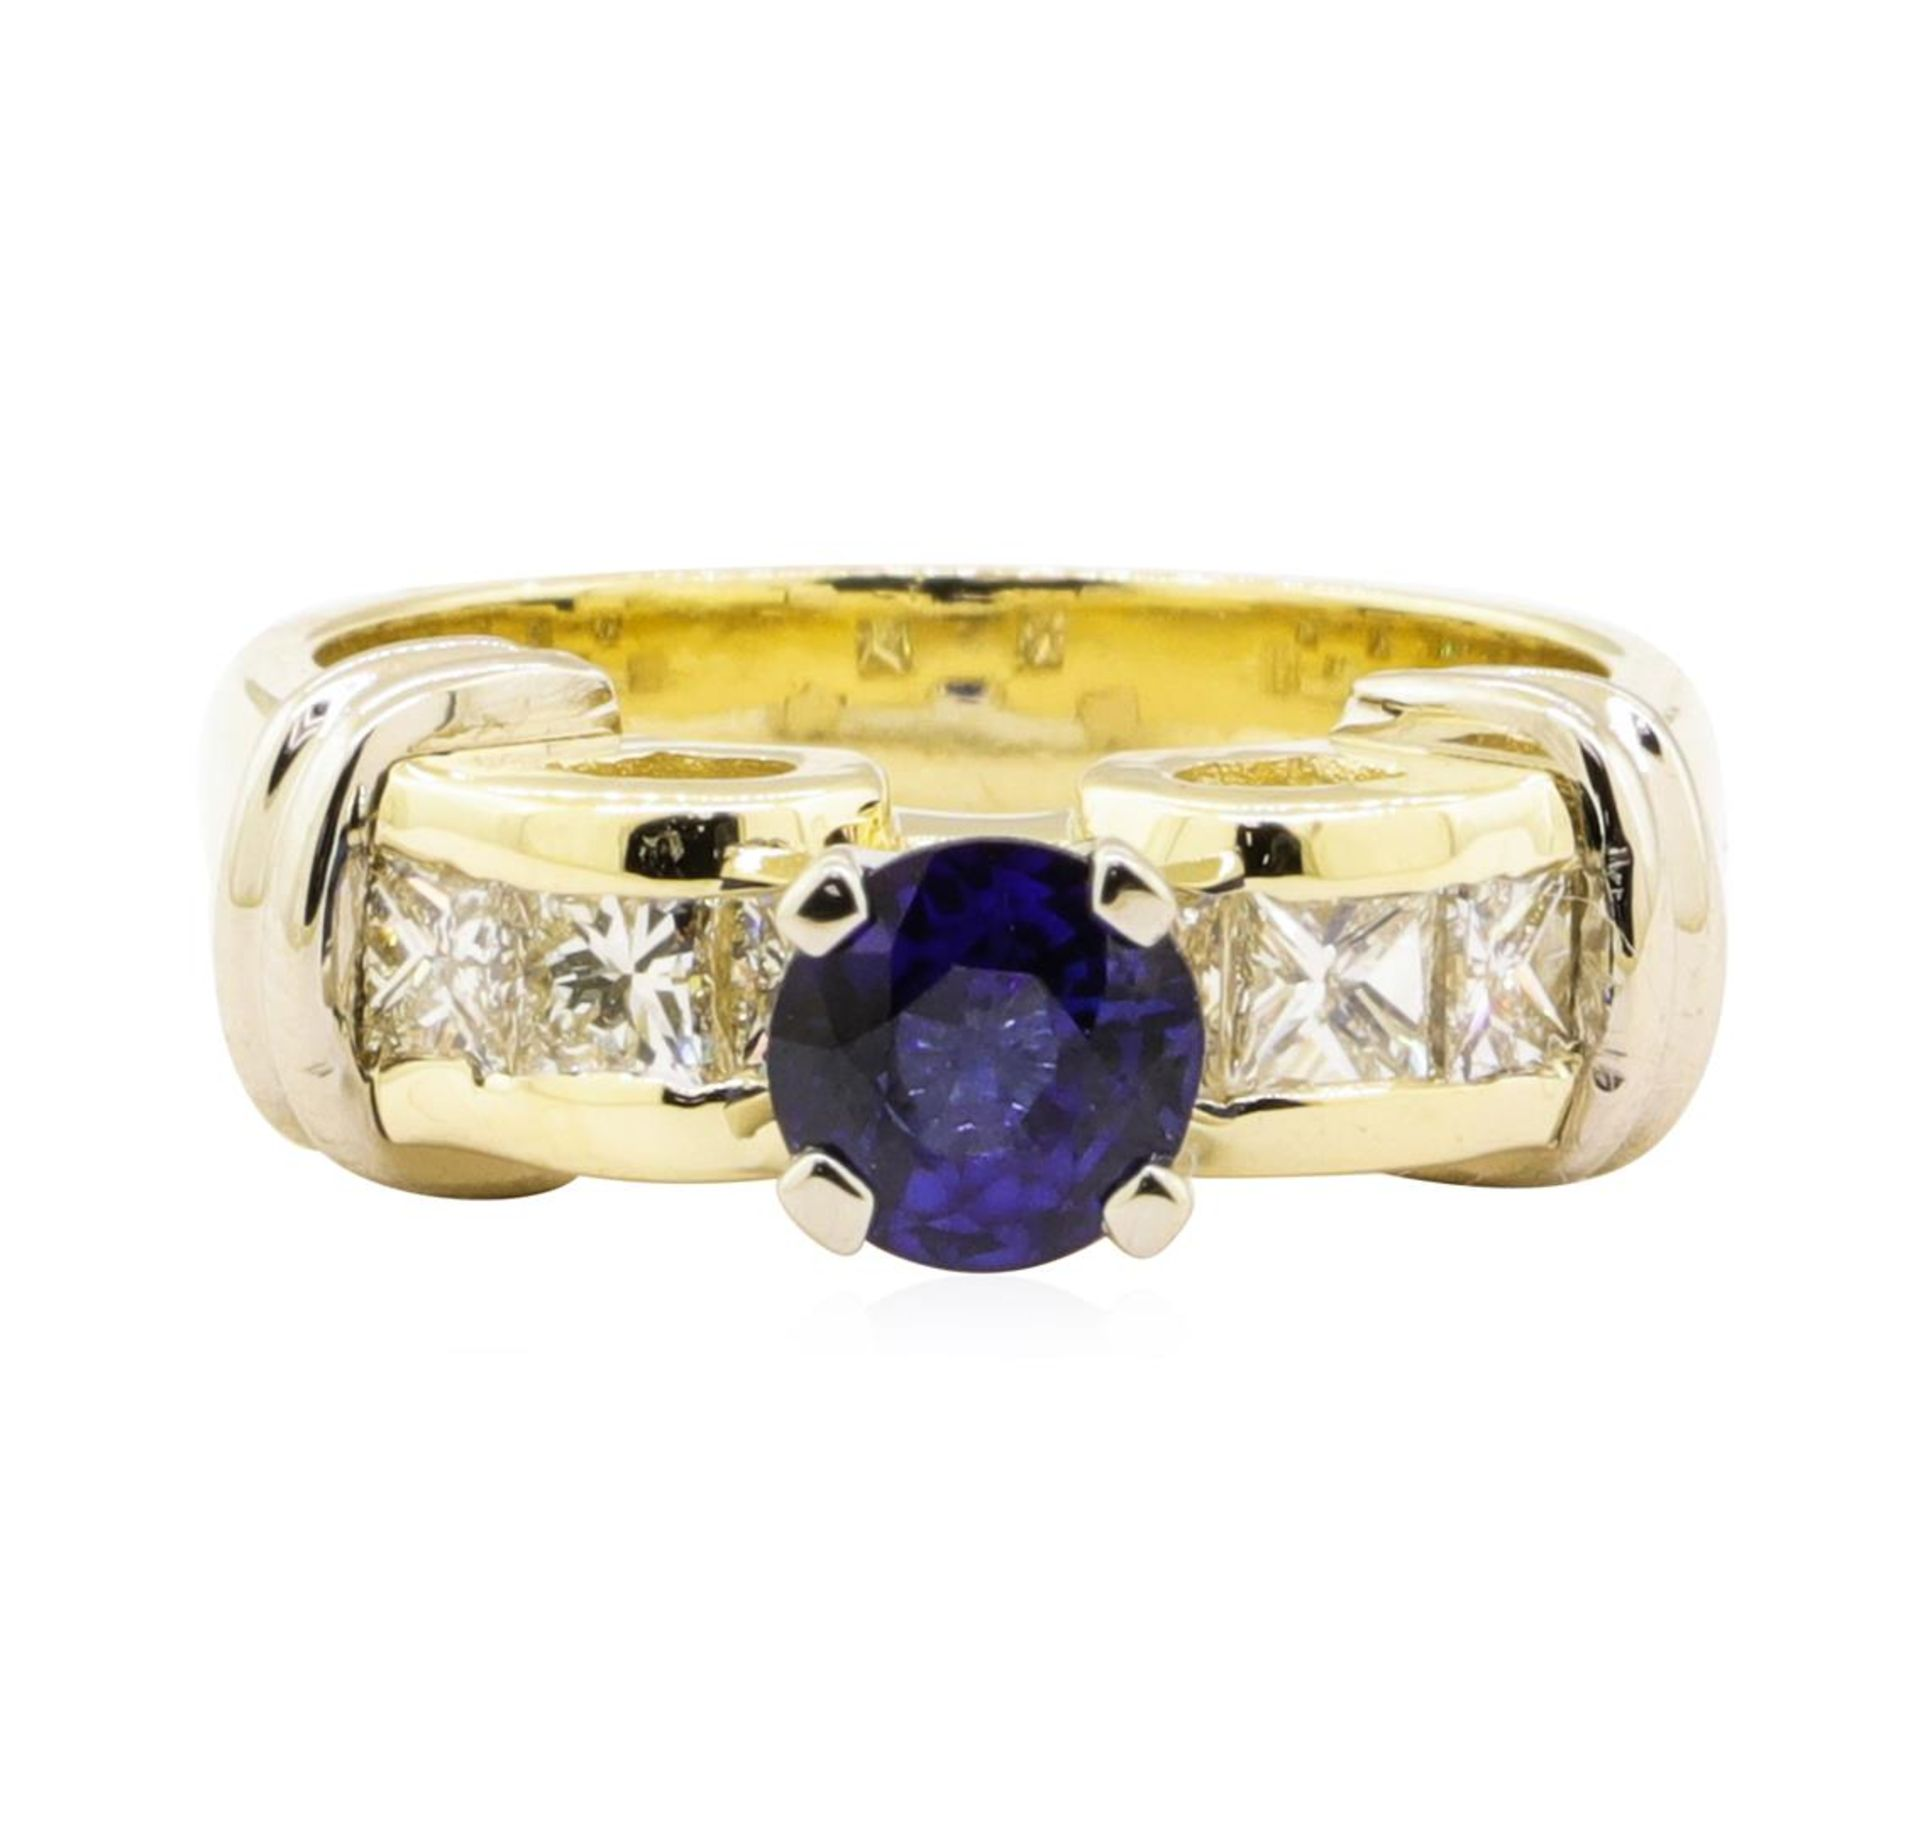 1.67 ctw Blue Sapphire And Diamond Ring - 14KT Yellow And White Gold - Image 2 of 5